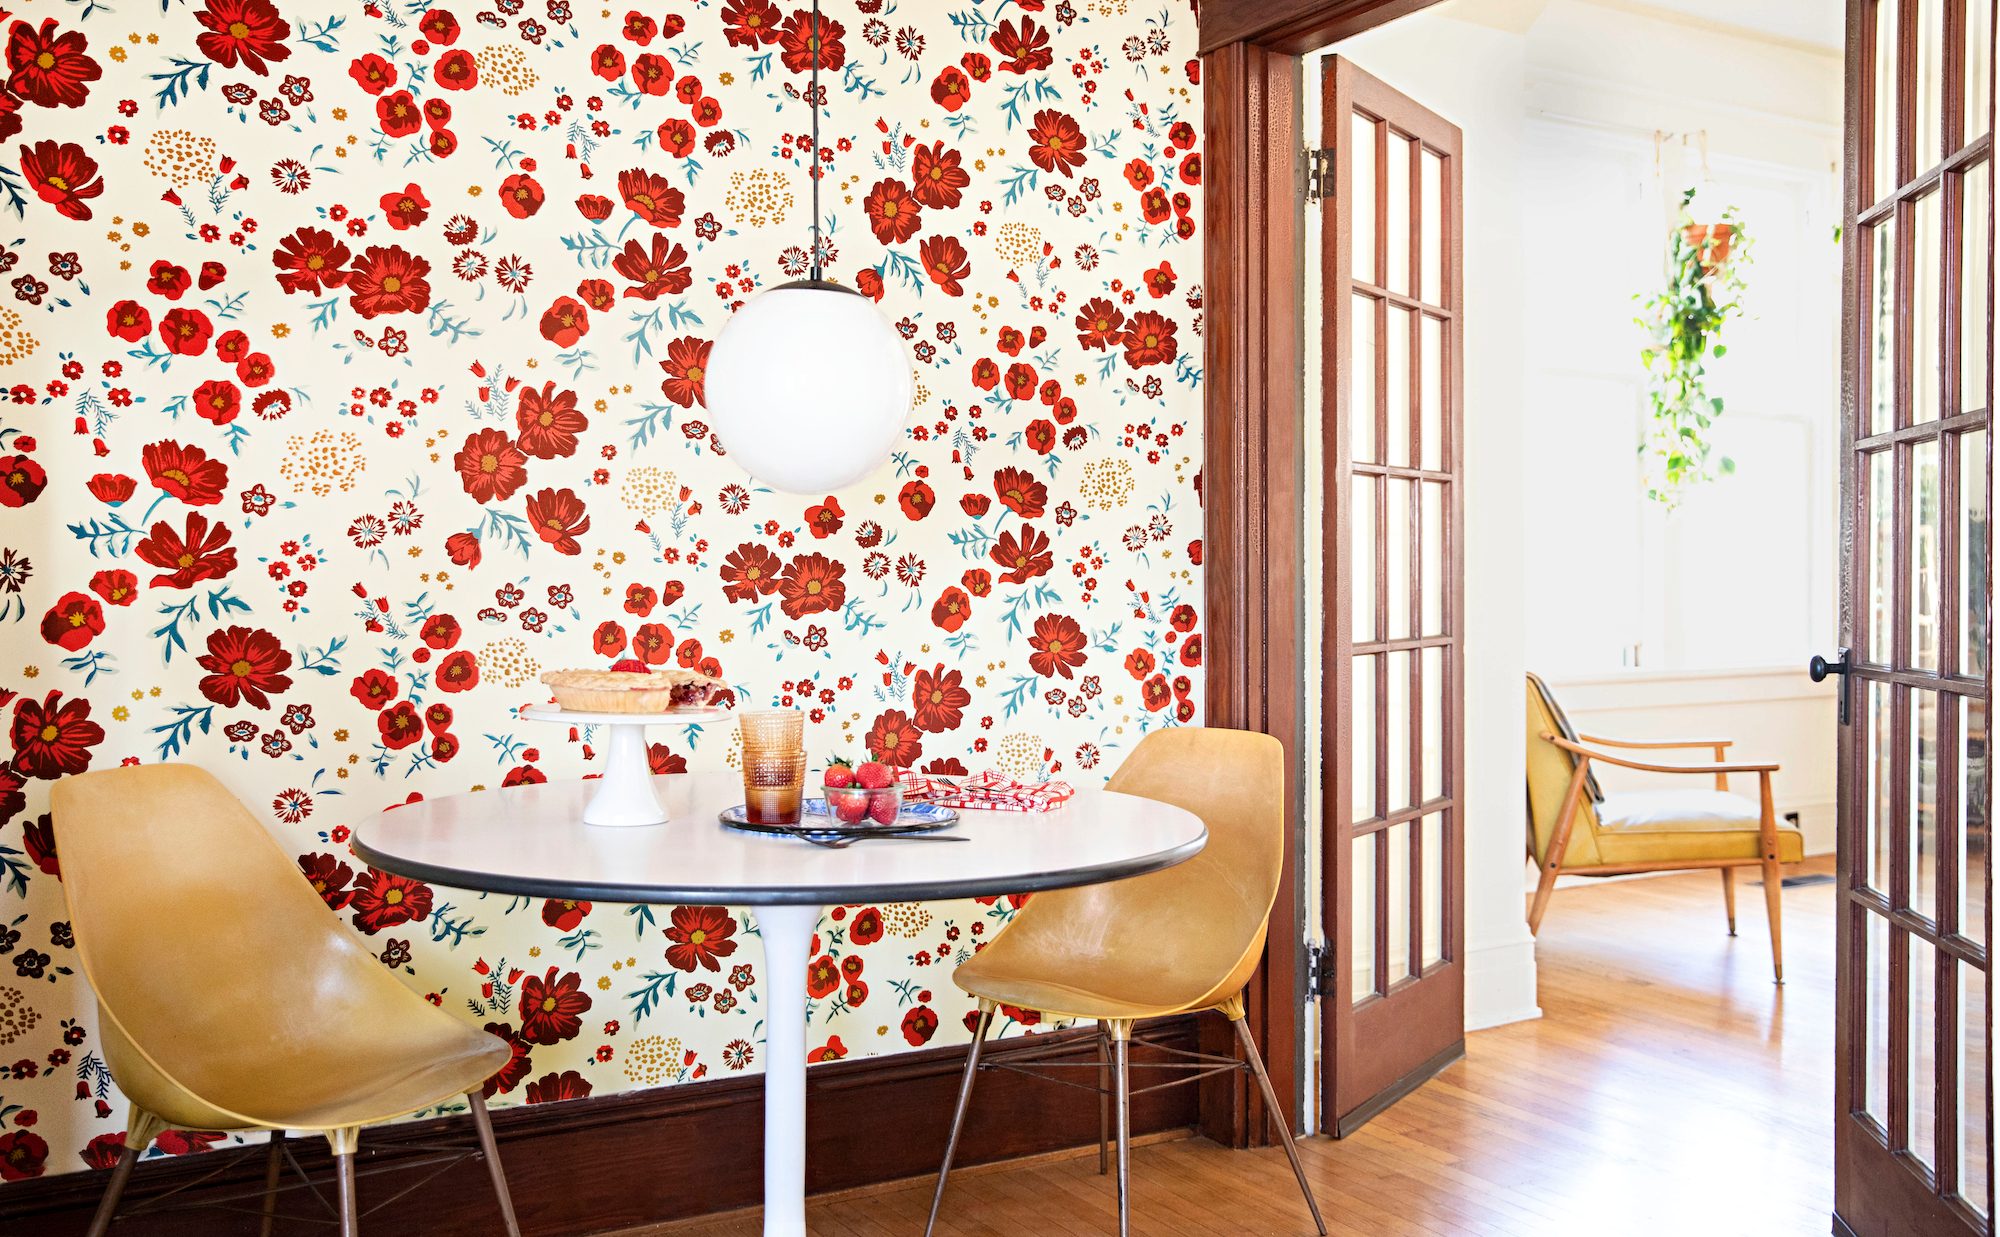 red floral wallpaper and midcentury furniture in dining area